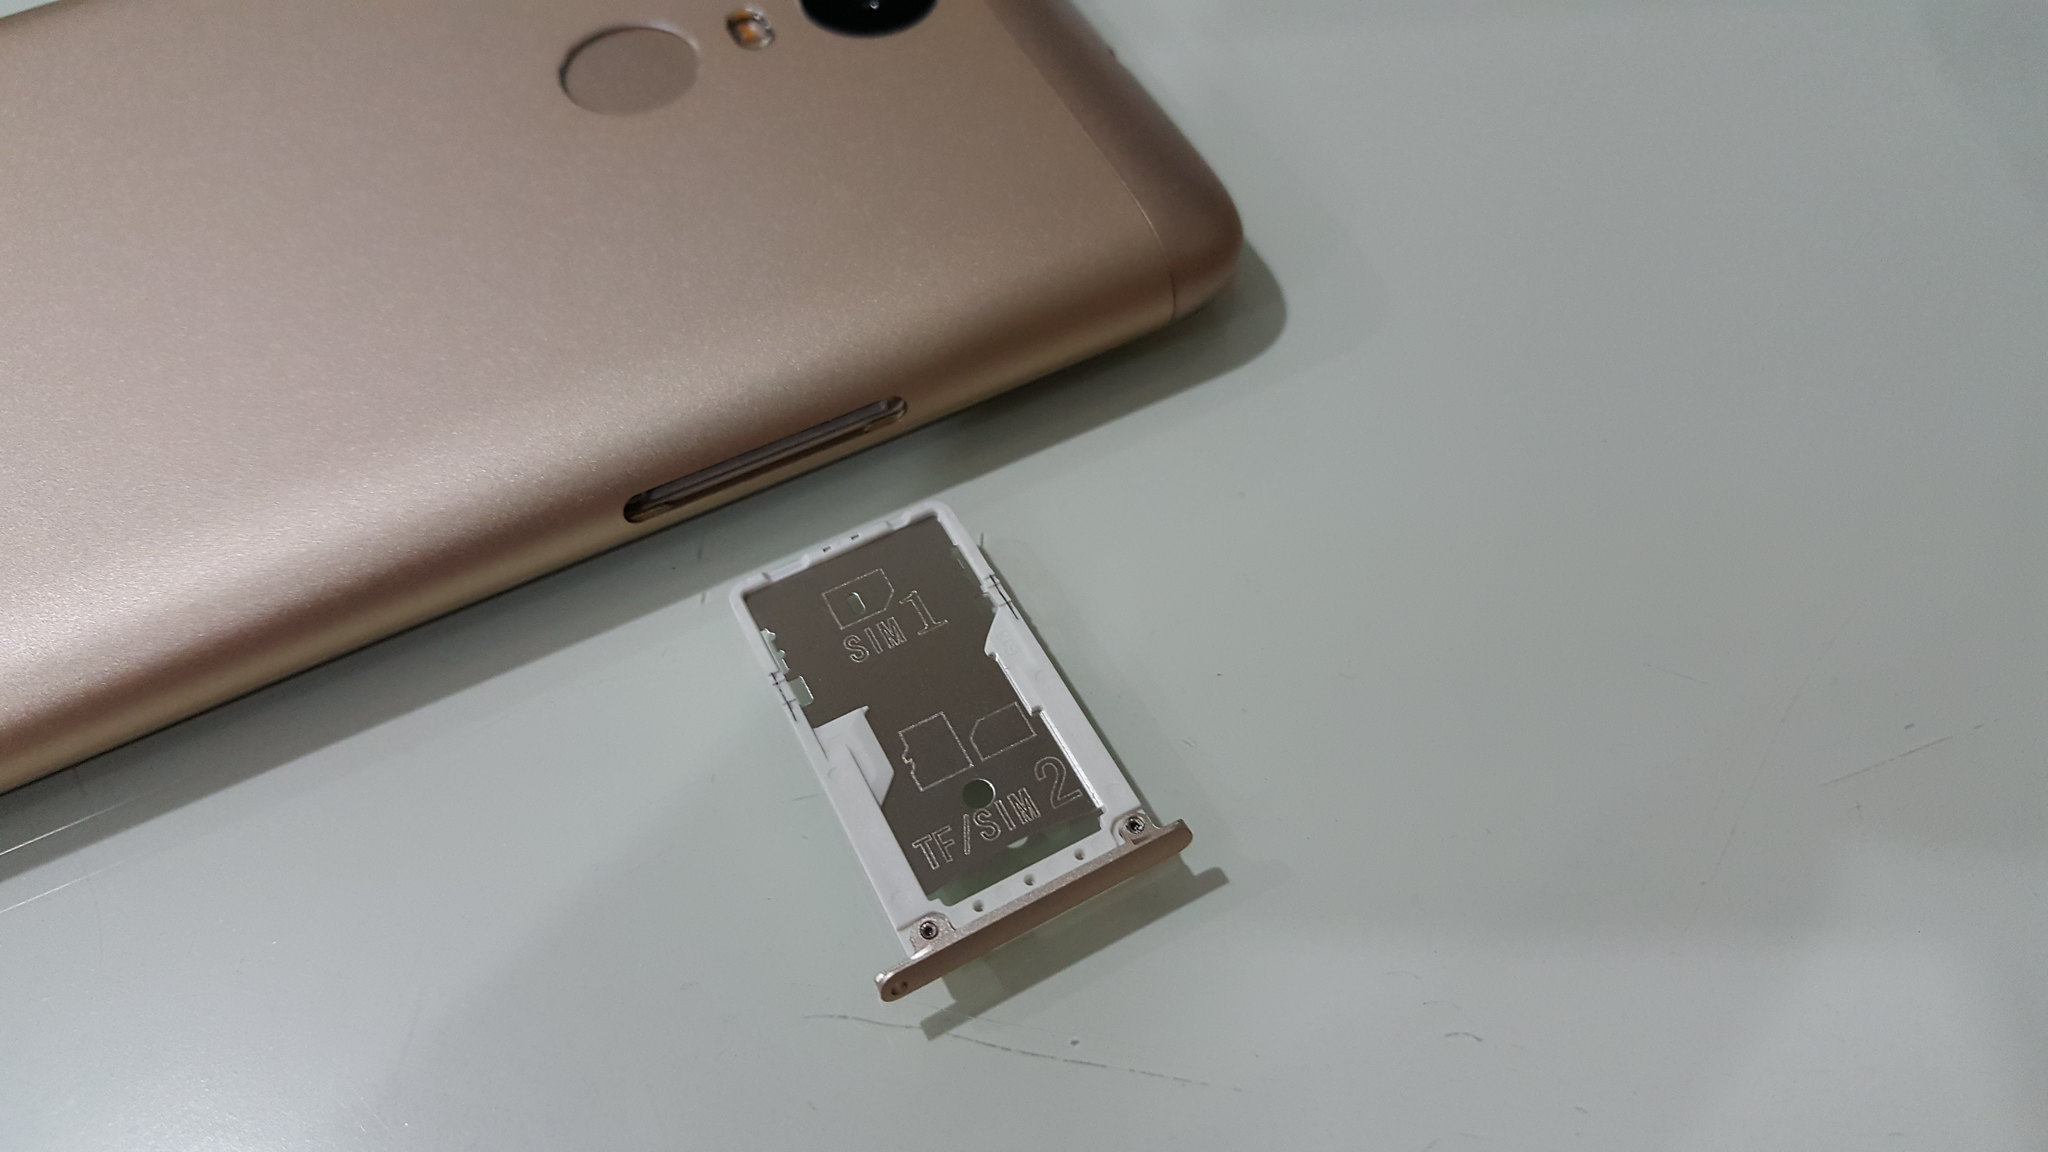 The SIM slot support micro SIM and as well nano SIM The second SIM slot also works as microSD card slot if you are not using the second SIM or vice versa